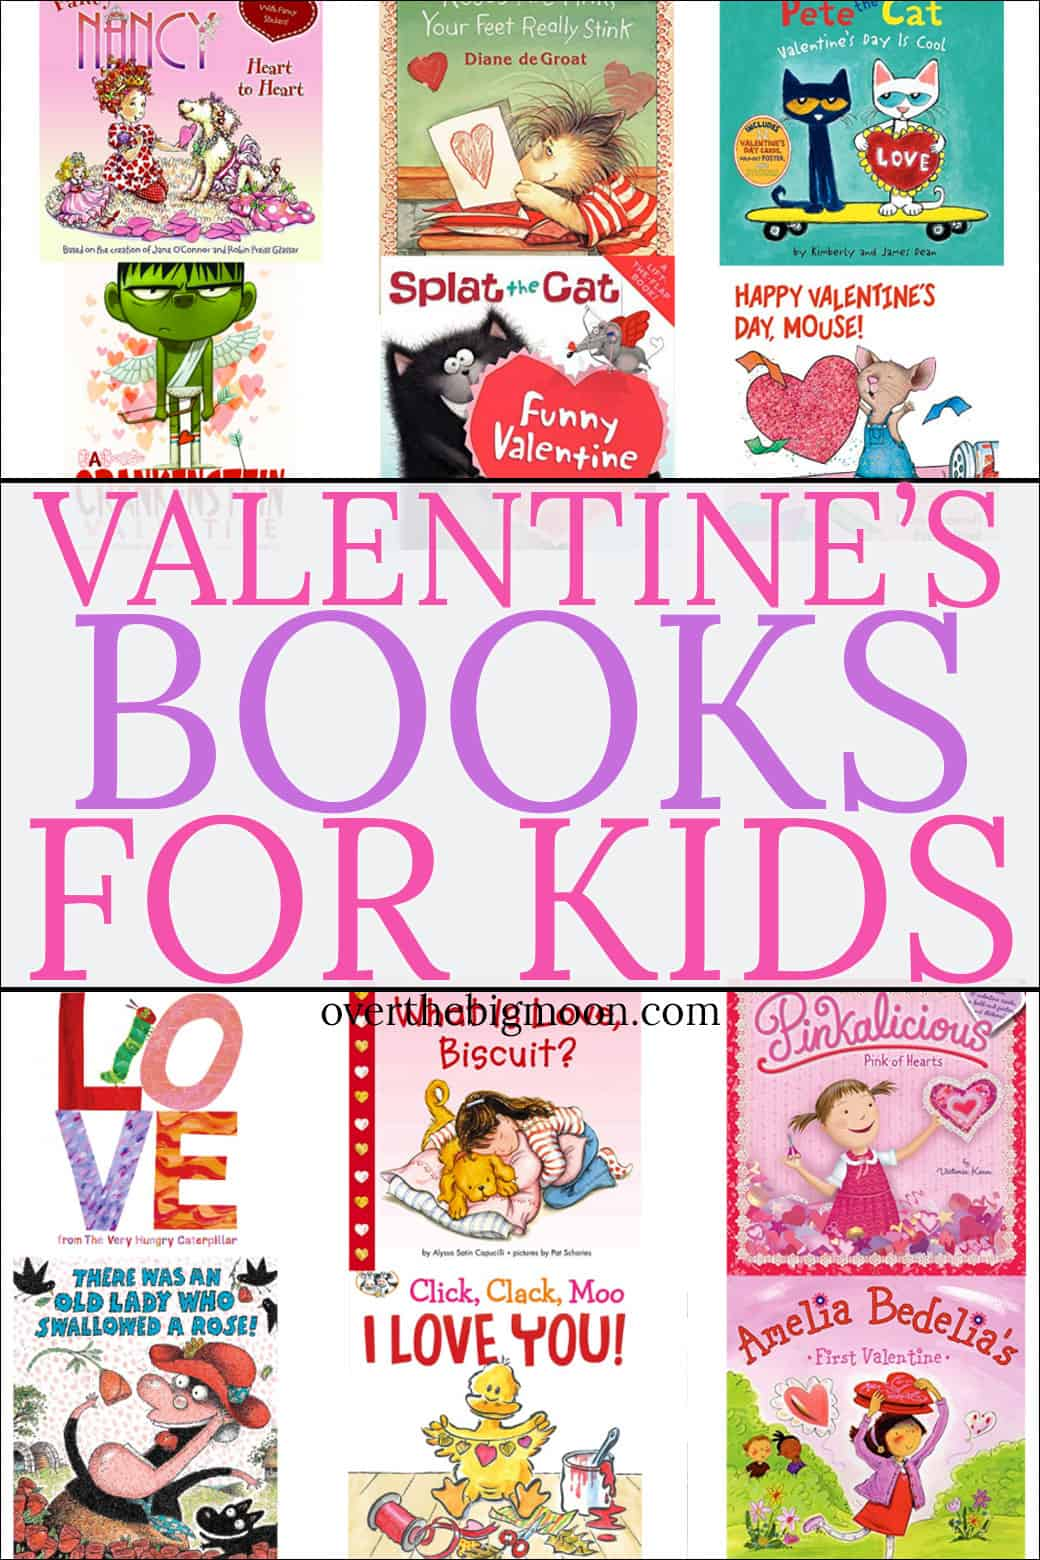 Valentine's Day Books for Kids -- reading holiday themed books is one of our favorite ways to celebrate holidays! Come check out these favorites of ours! From overthebigmoon.com!